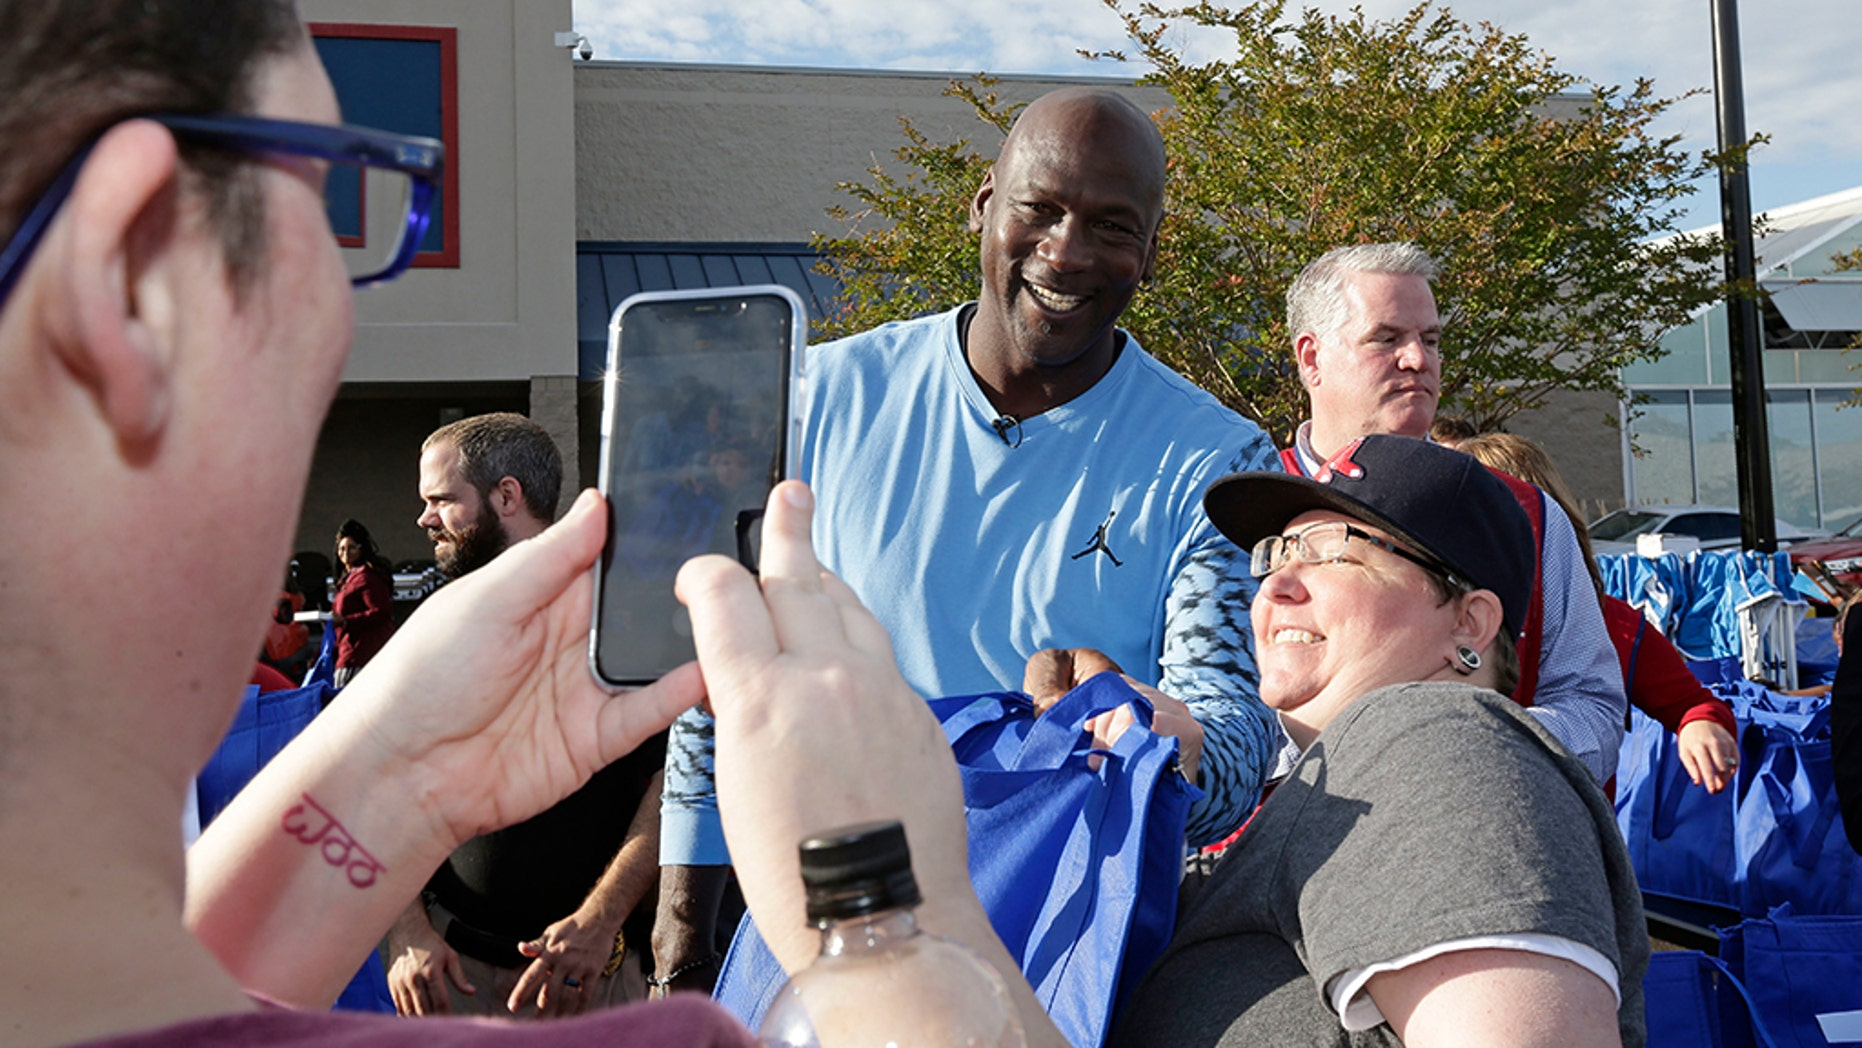 Charlotte Hornets owner Michael Jordan poses for a photo while greeting people and handing out food for Thanksgiving to members of the community in Wilmington, N.C., Tuesday. (AP Photo/Gerry Broome)